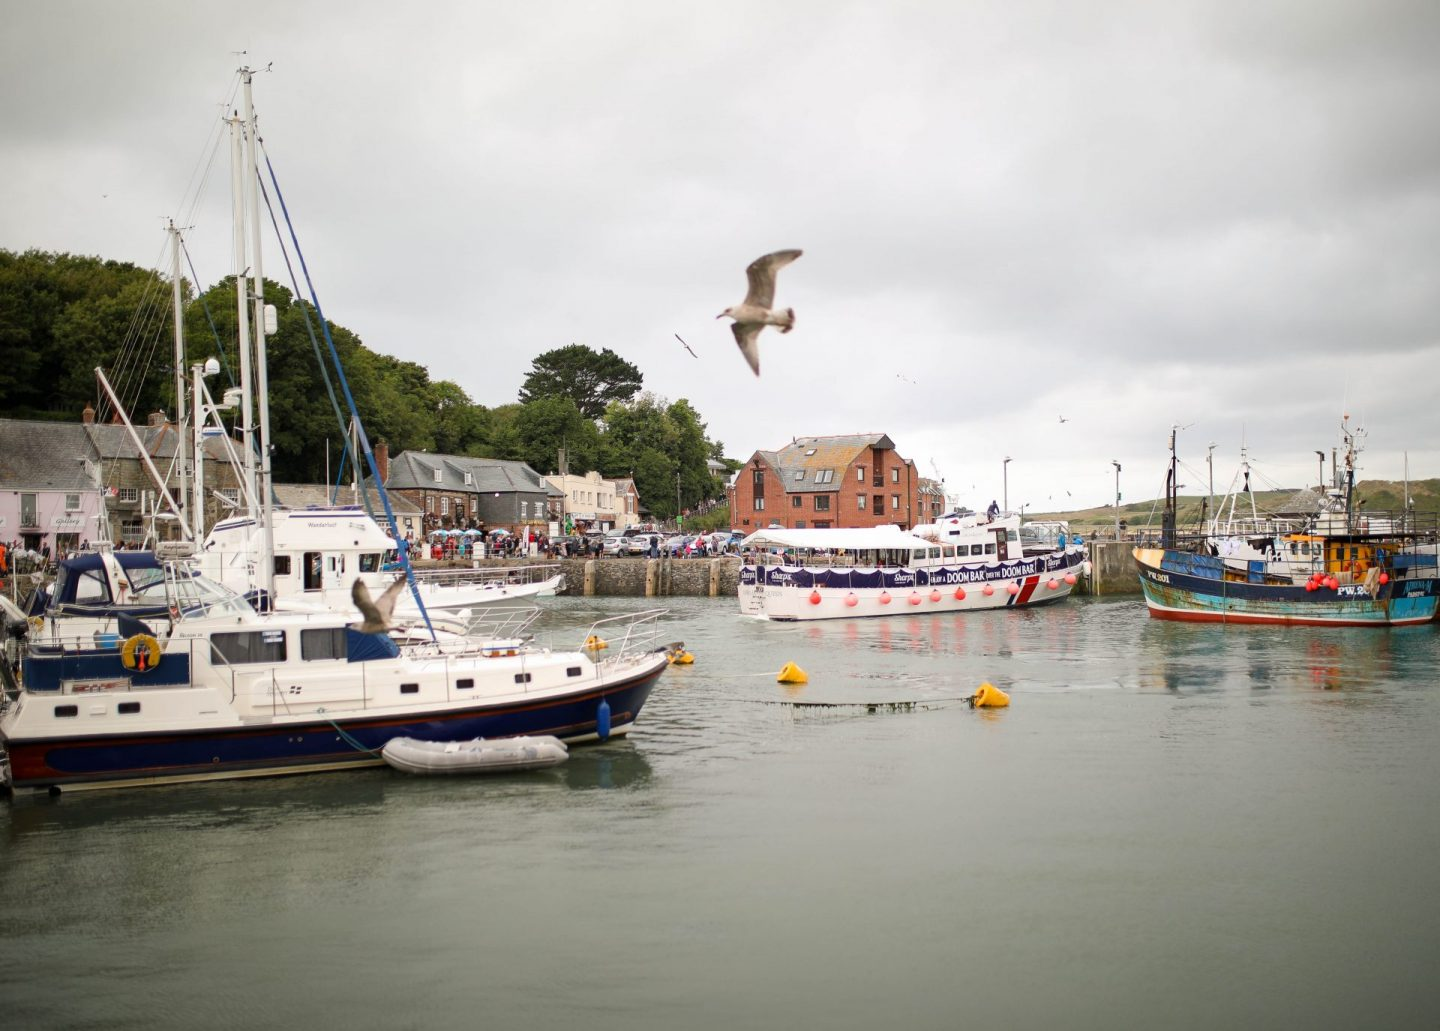 Rick Stein Seafood Restaurant Padstow